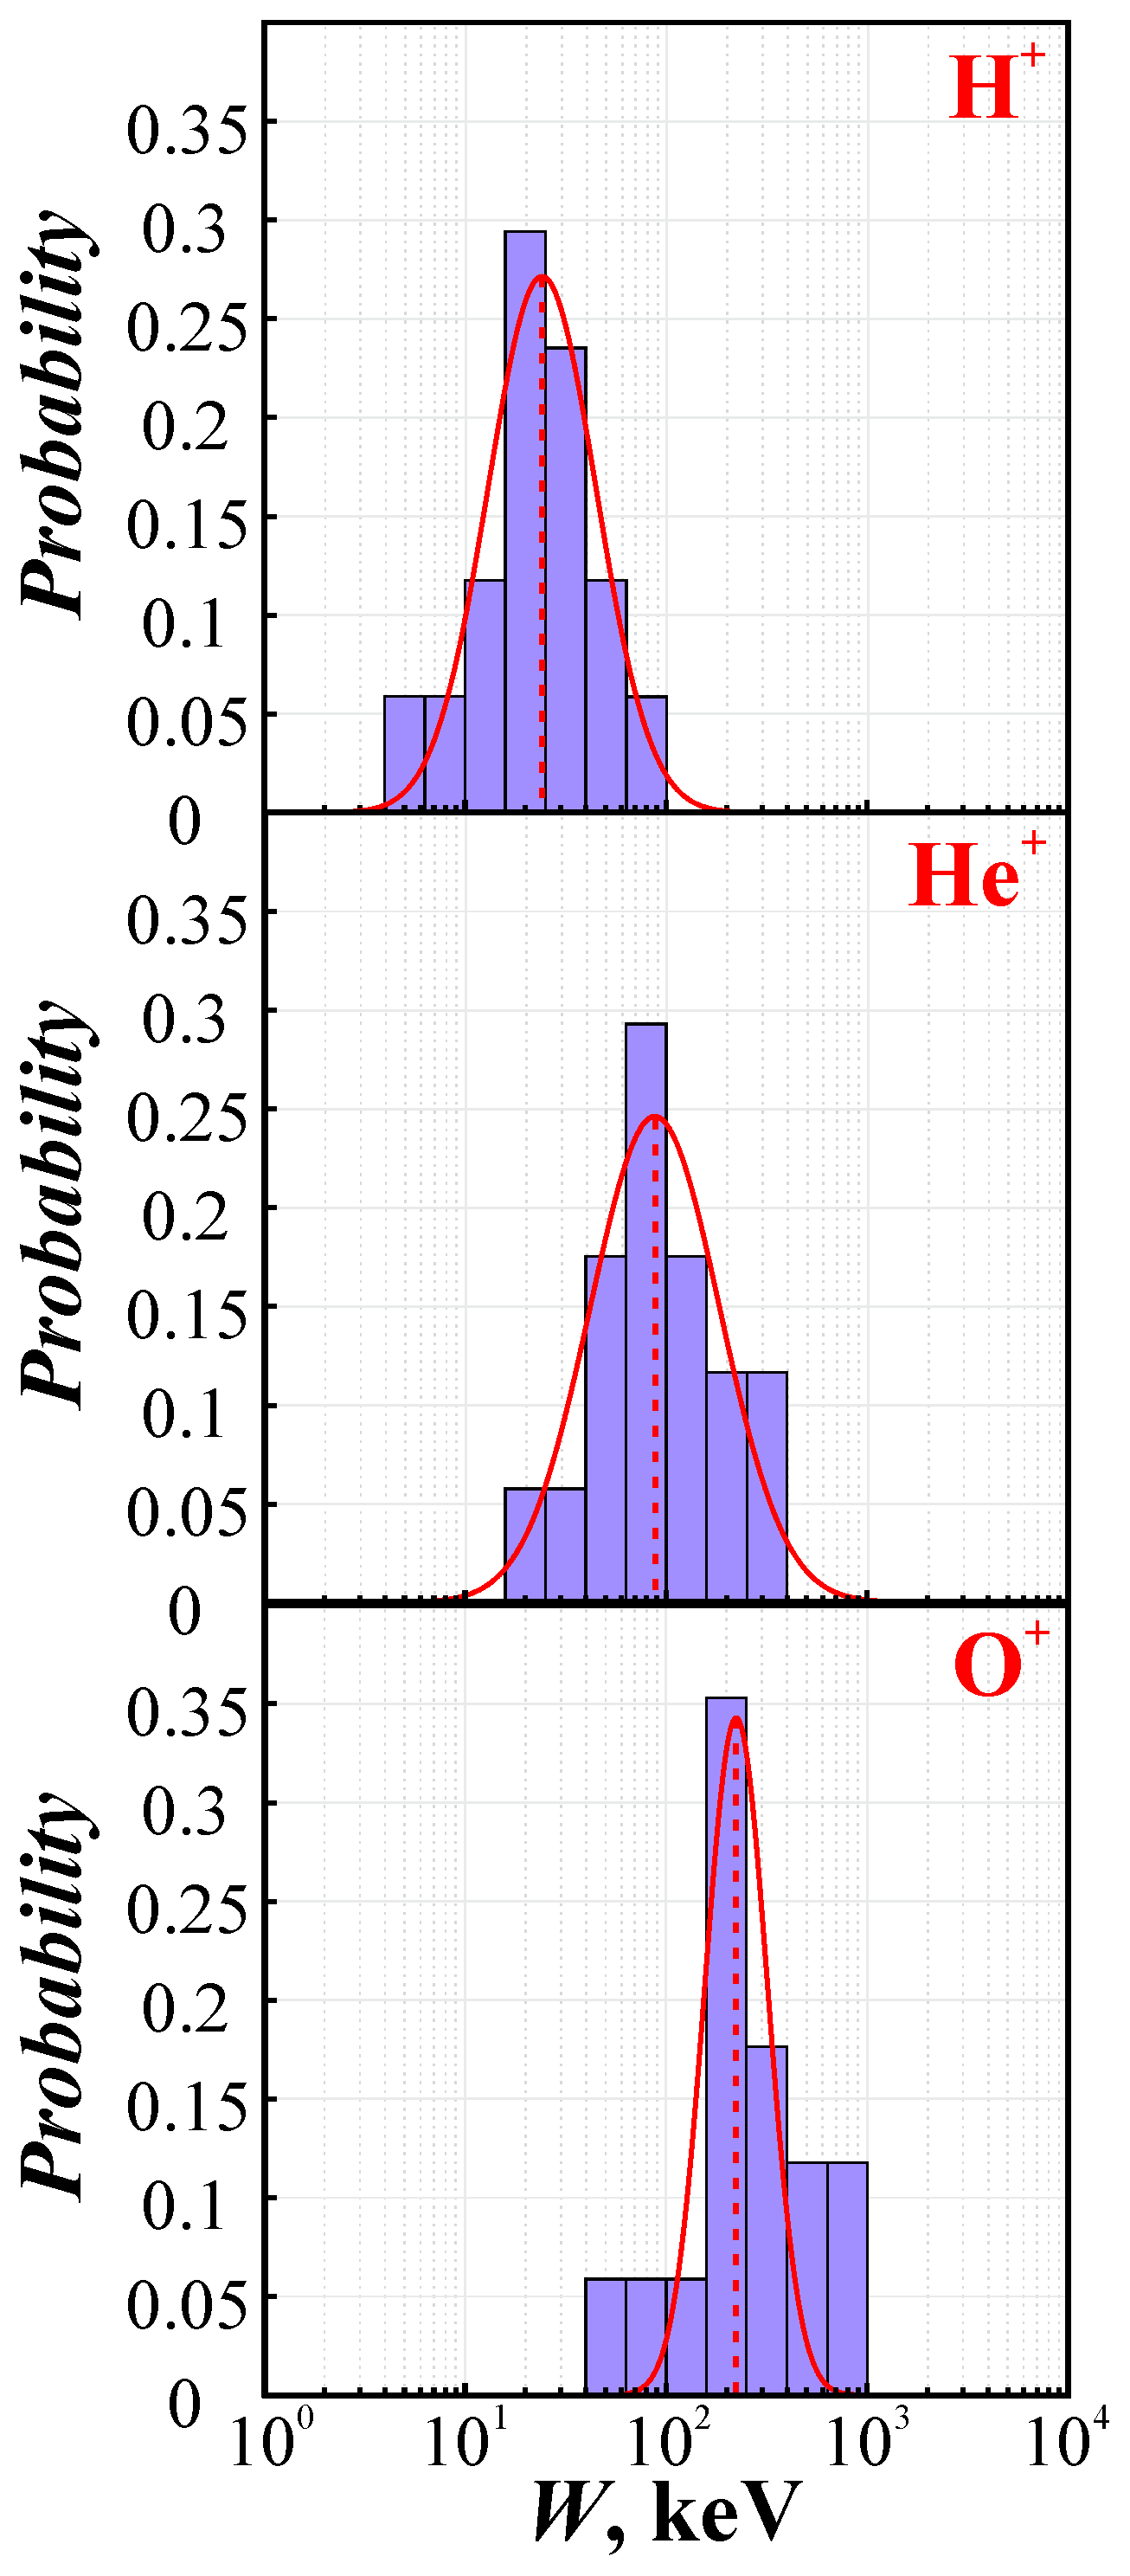 ANGEO - Acceleration of protons and heavy ions to suprathermal